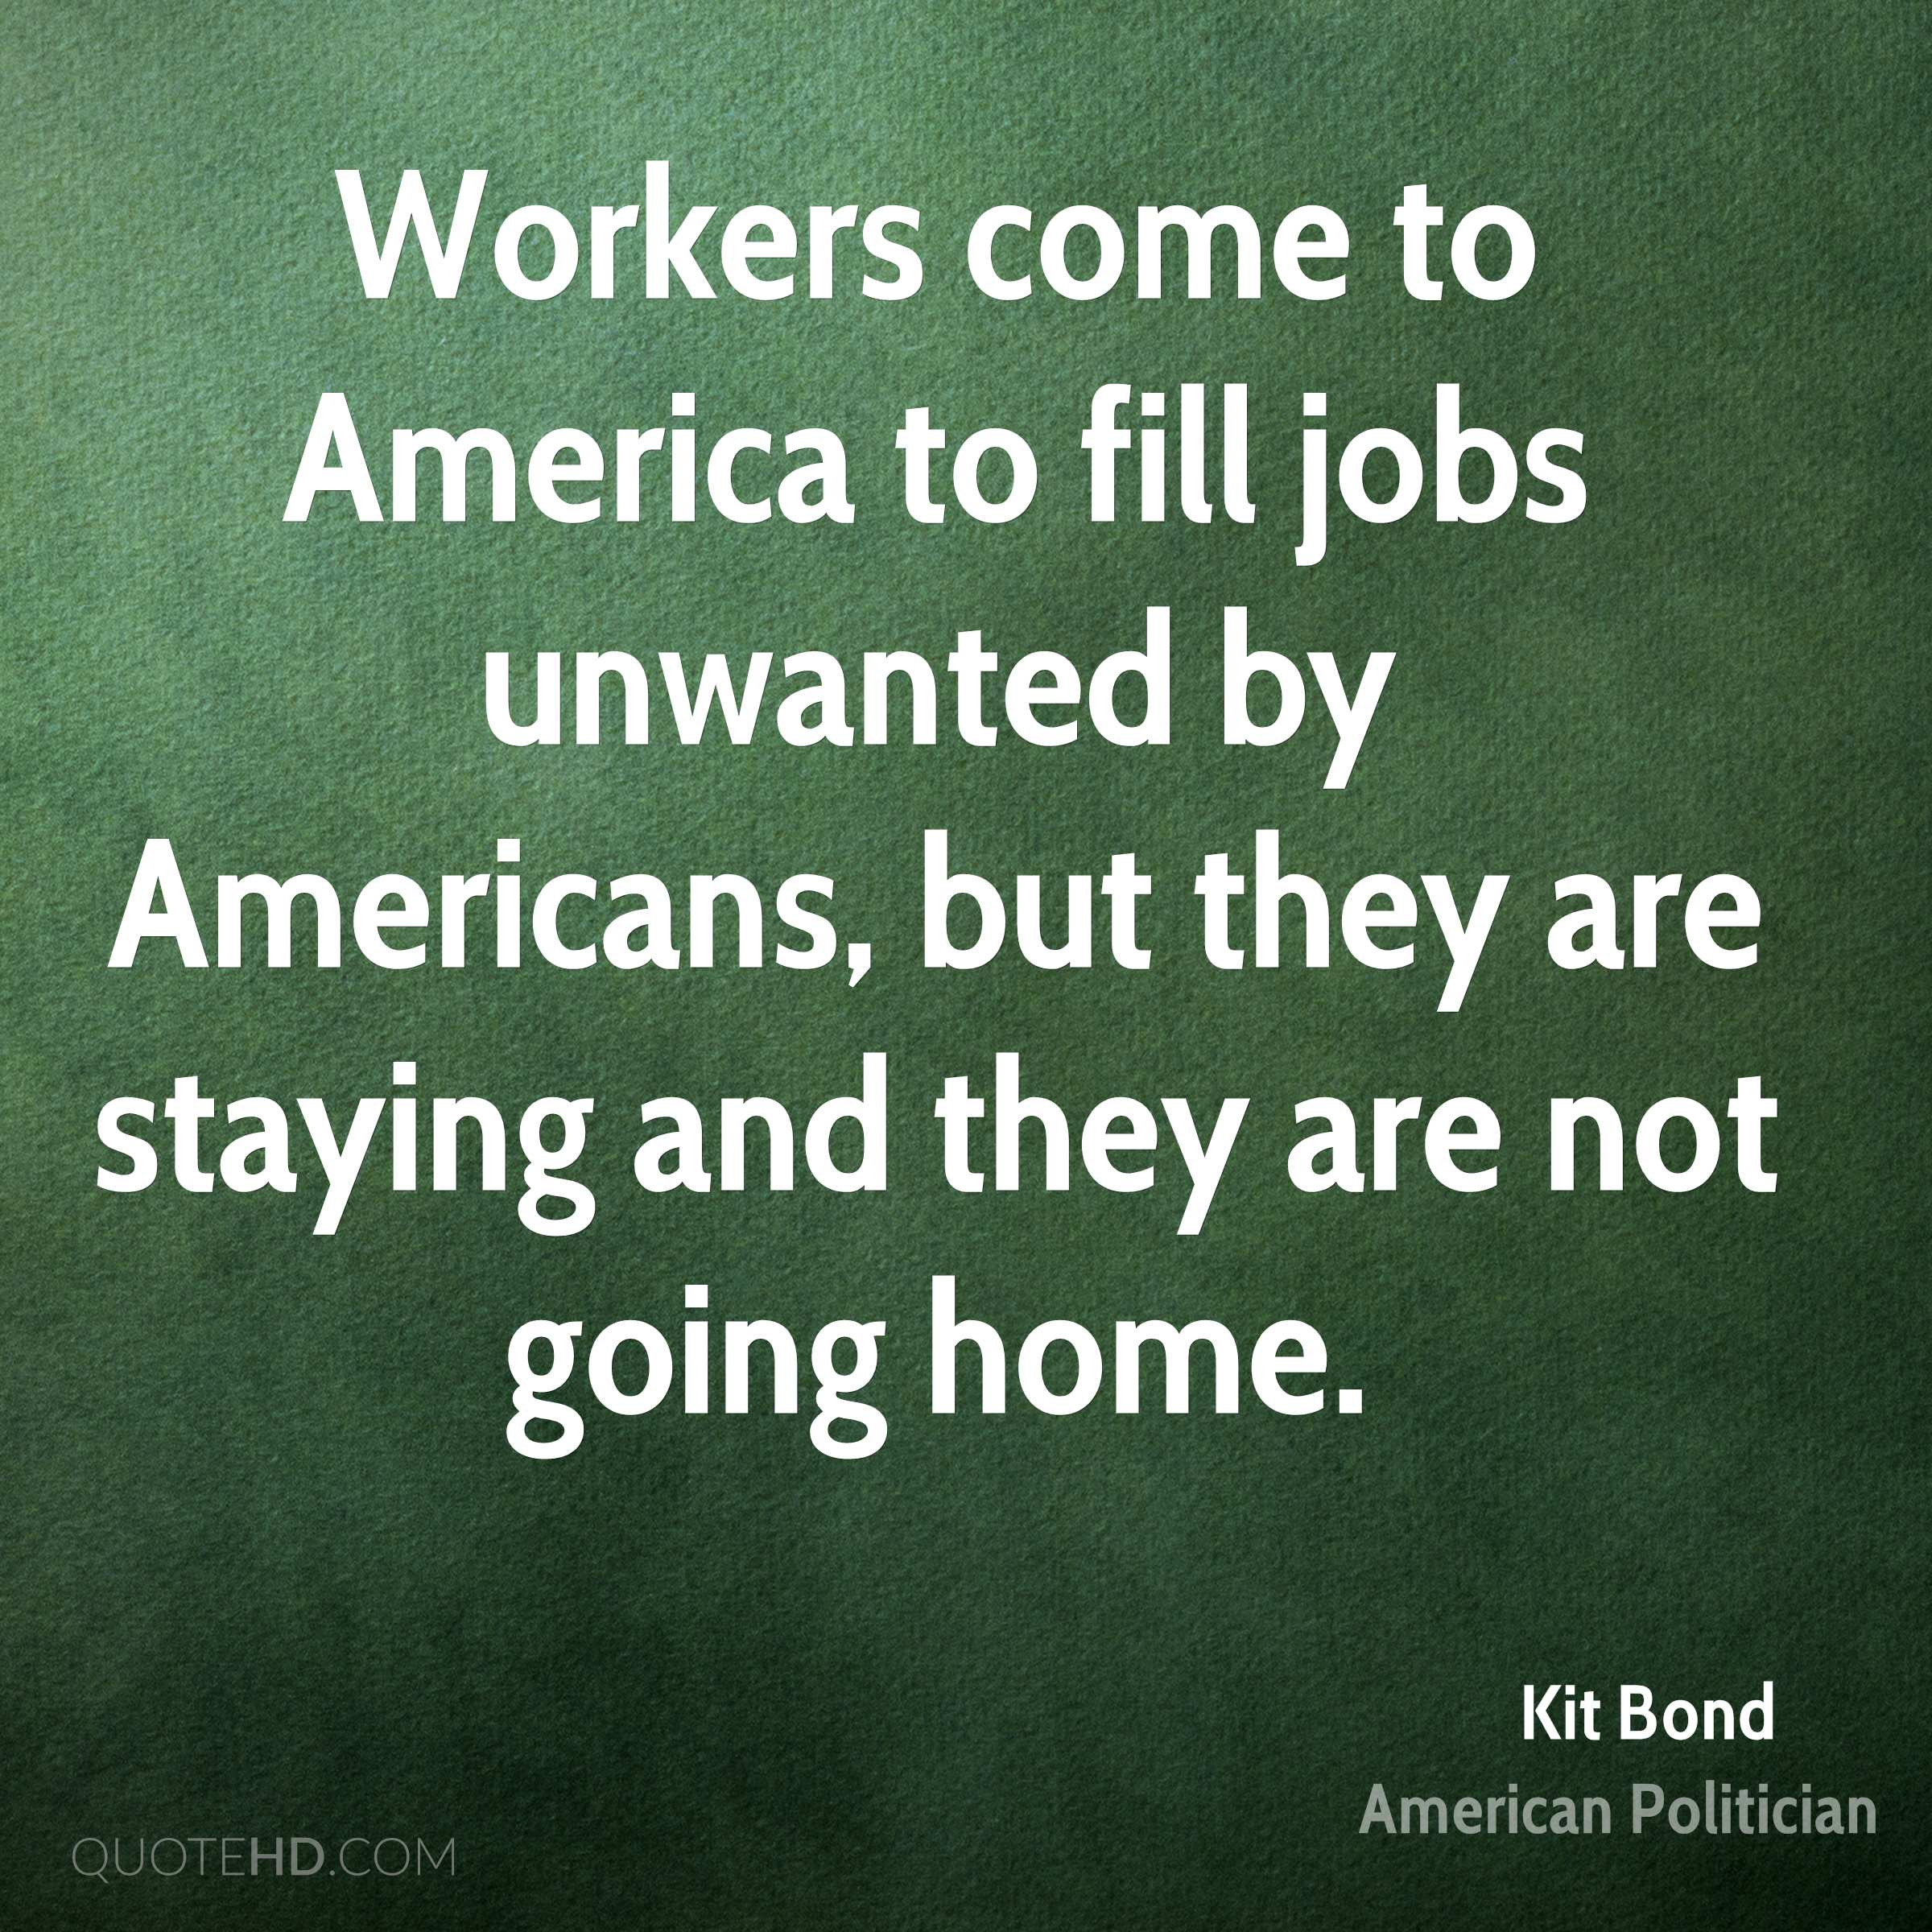 Workers come to America to fill jobs unwanted by Americans, but they are staying and they are not going home.